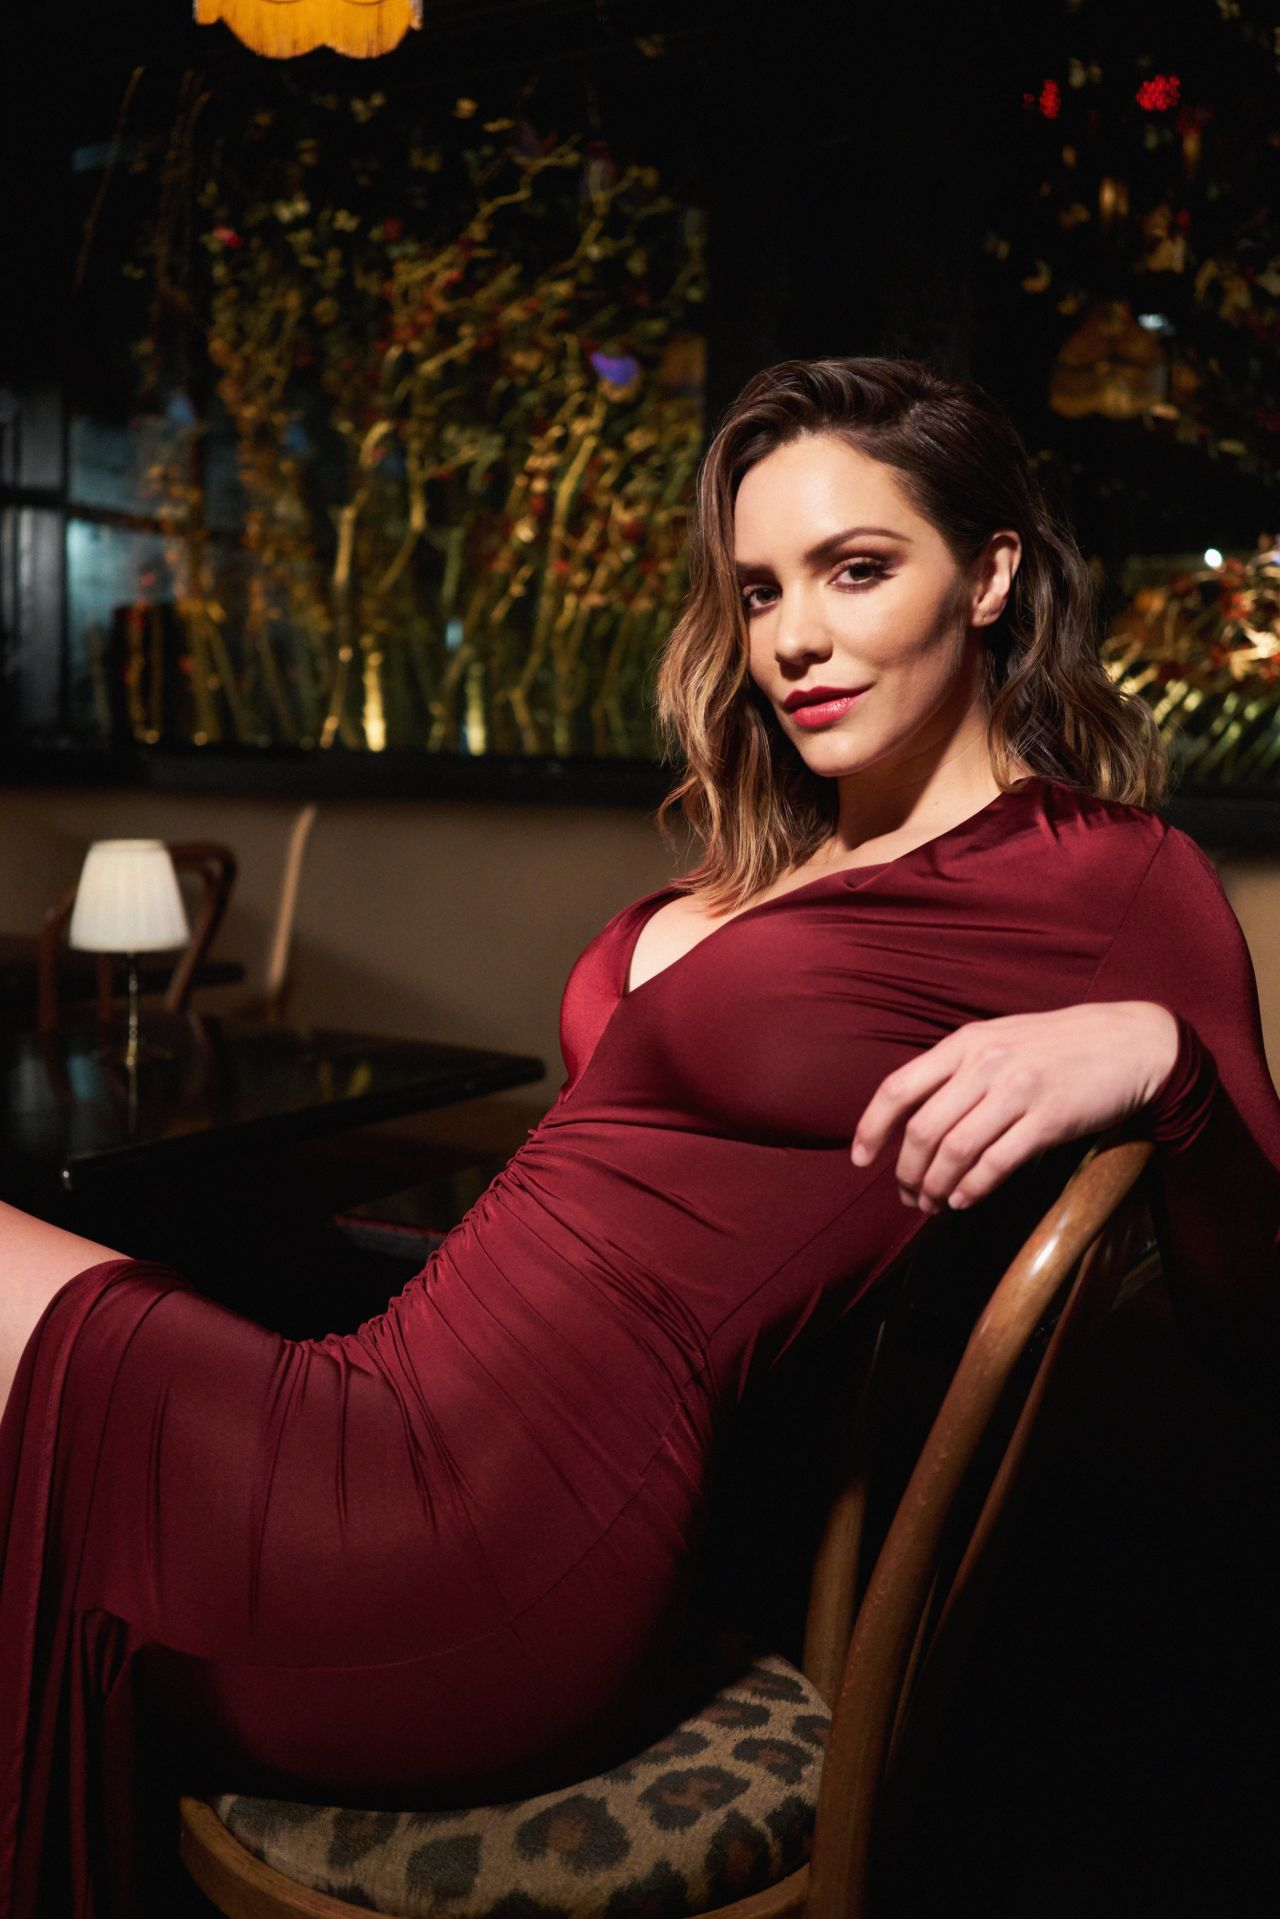 Katharine McPhee STUNNING in Night and Day music video BTS photos